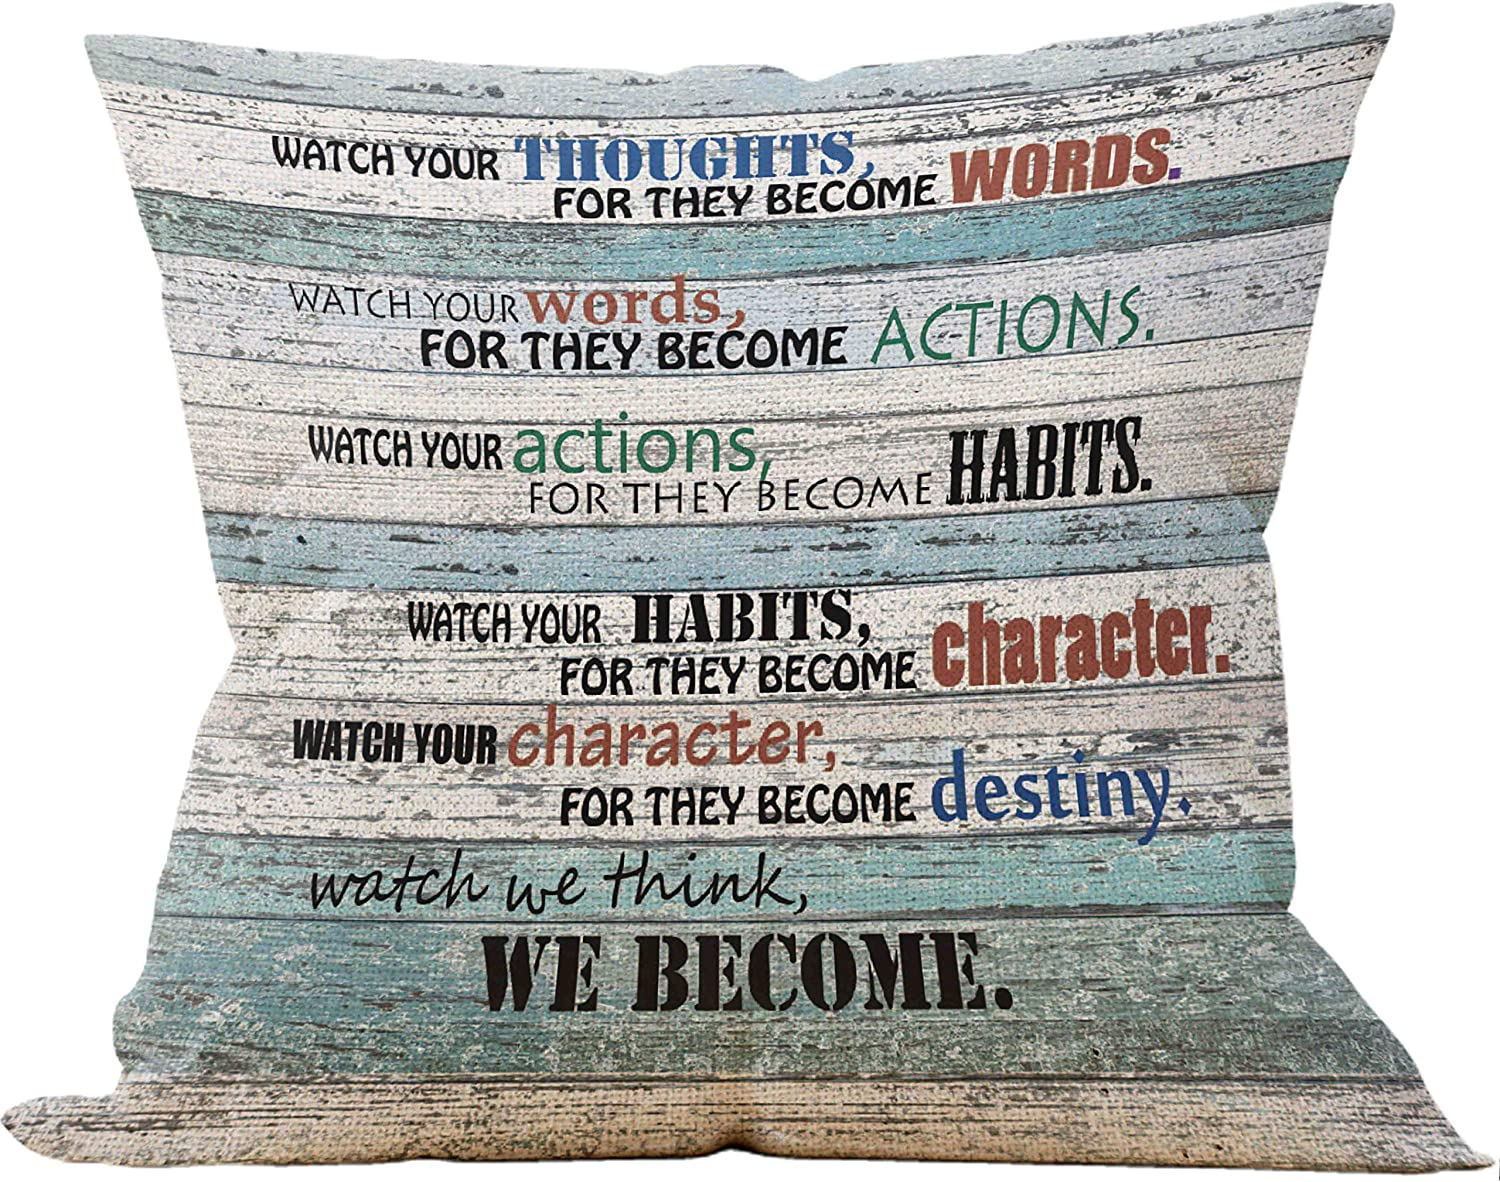 Mancheng-zi Inspirational Quotes Throw Pillow Case, Rules of Life Pillow, 18 x 18 Inch Vintage Wood Office Decorative Cotton Linen Cushion Cover for Sofa Couch Office